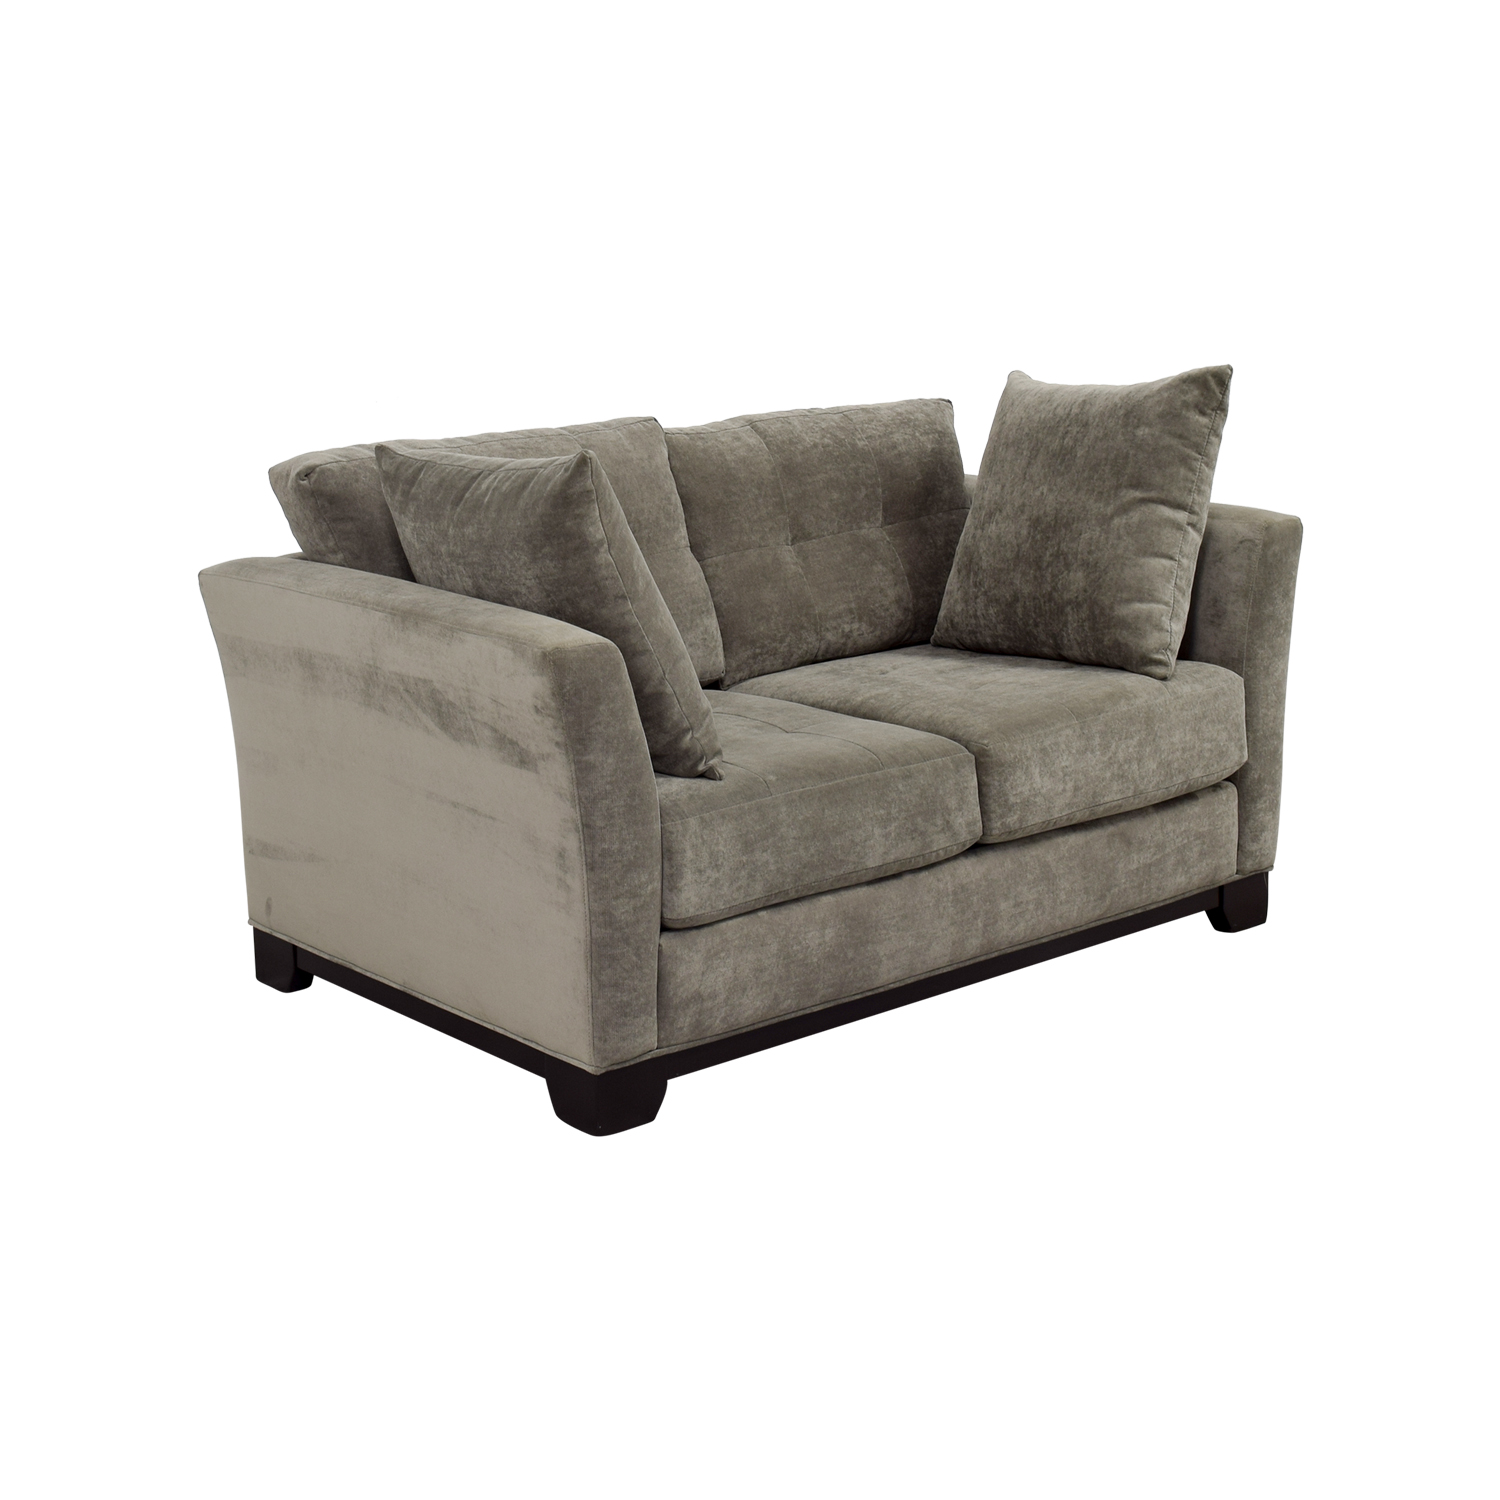 macy s elliot sofa leather corner bed gumtree 26 off 39s microfiber tugfted loveseat